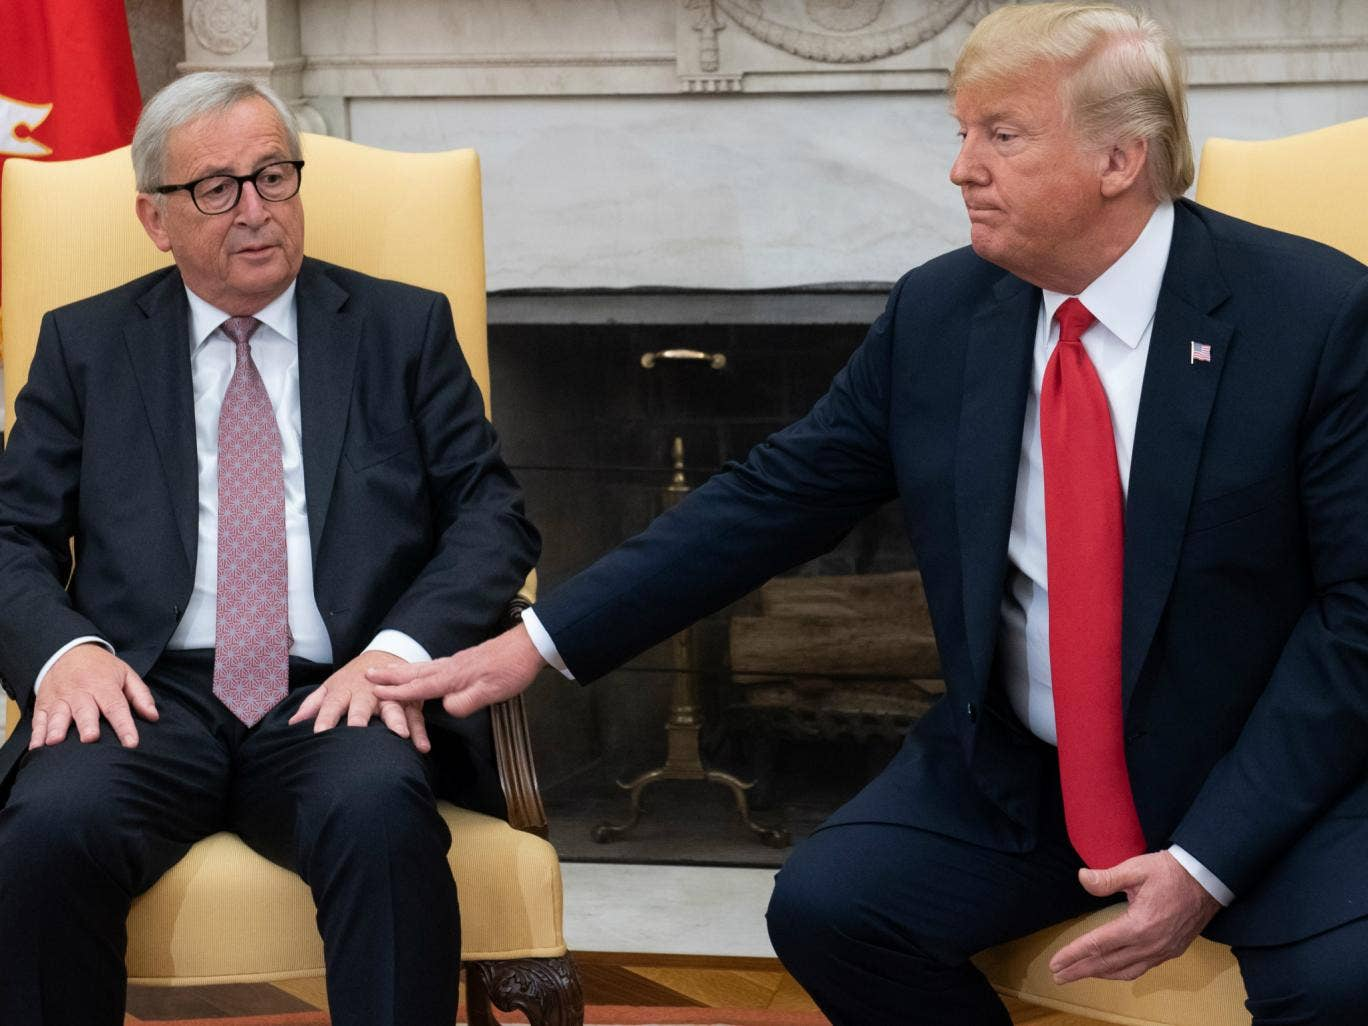 Juncker used 'brightly coloured, simple flashcards' to explain trade to Trump during meeting